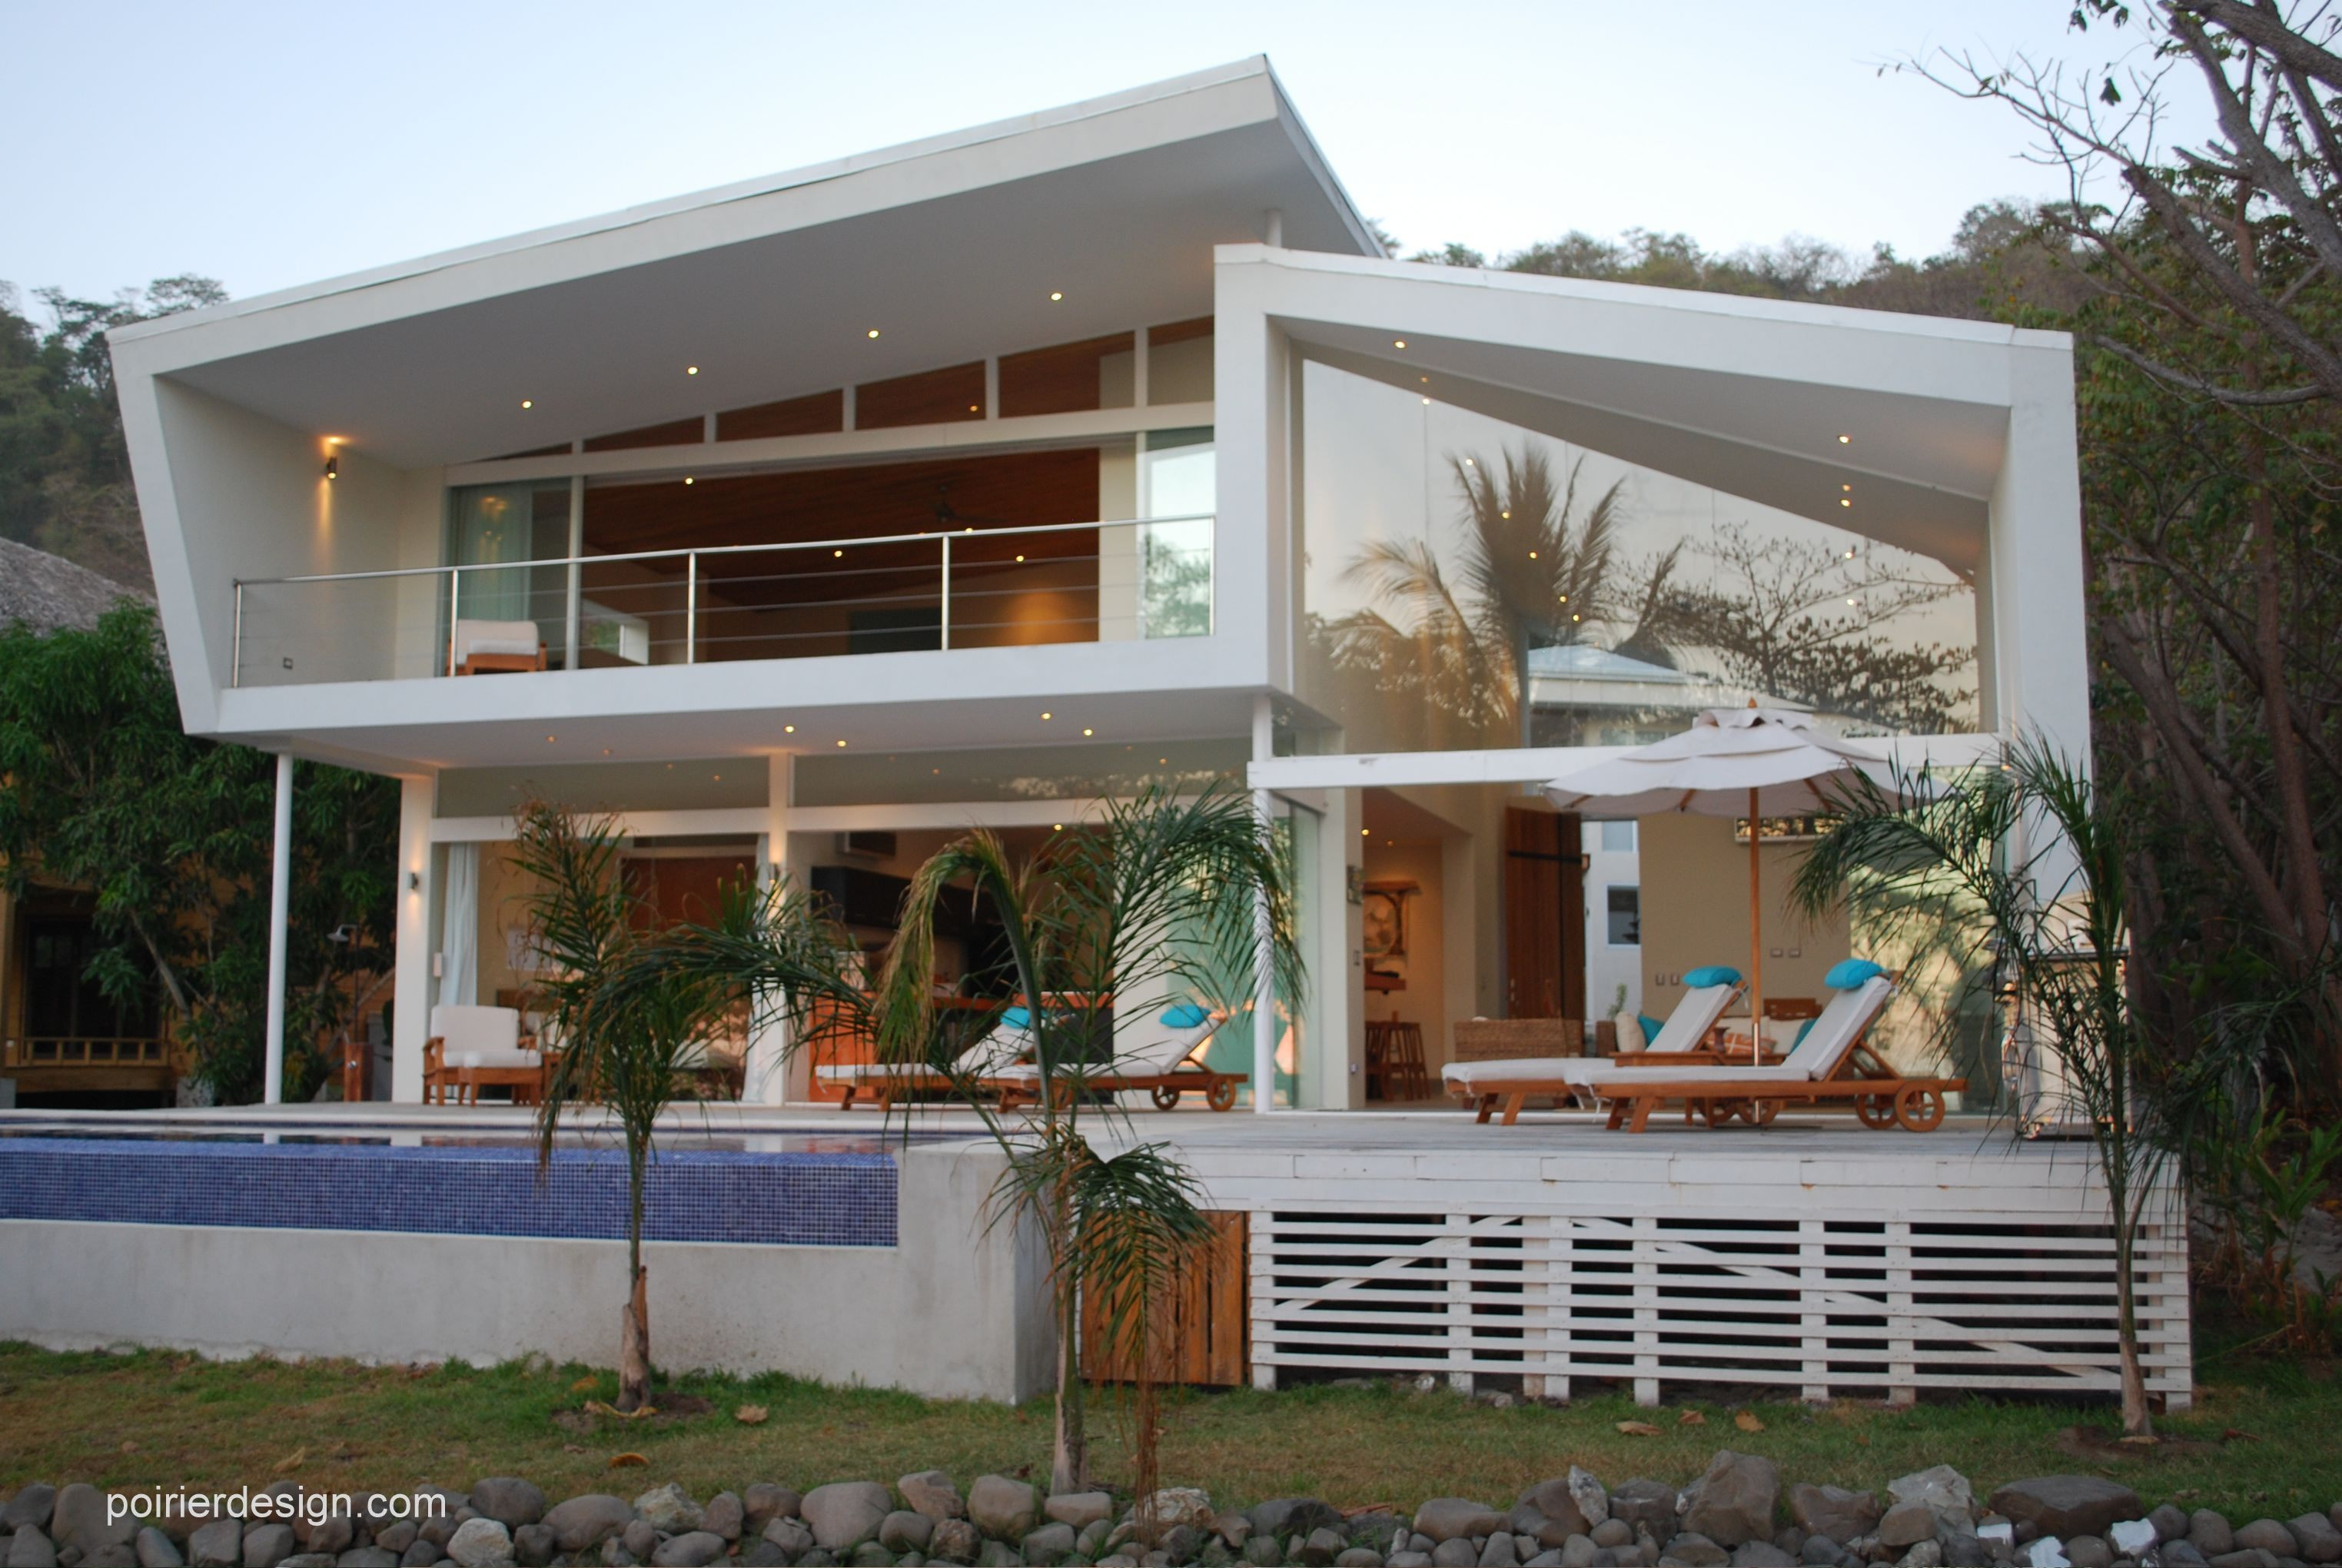 modern architecture, beach house, costa rican architecture, modern beach house, costa rica beach house, michael poirier, poirier design, ken jordan, richard bishop, crystal method